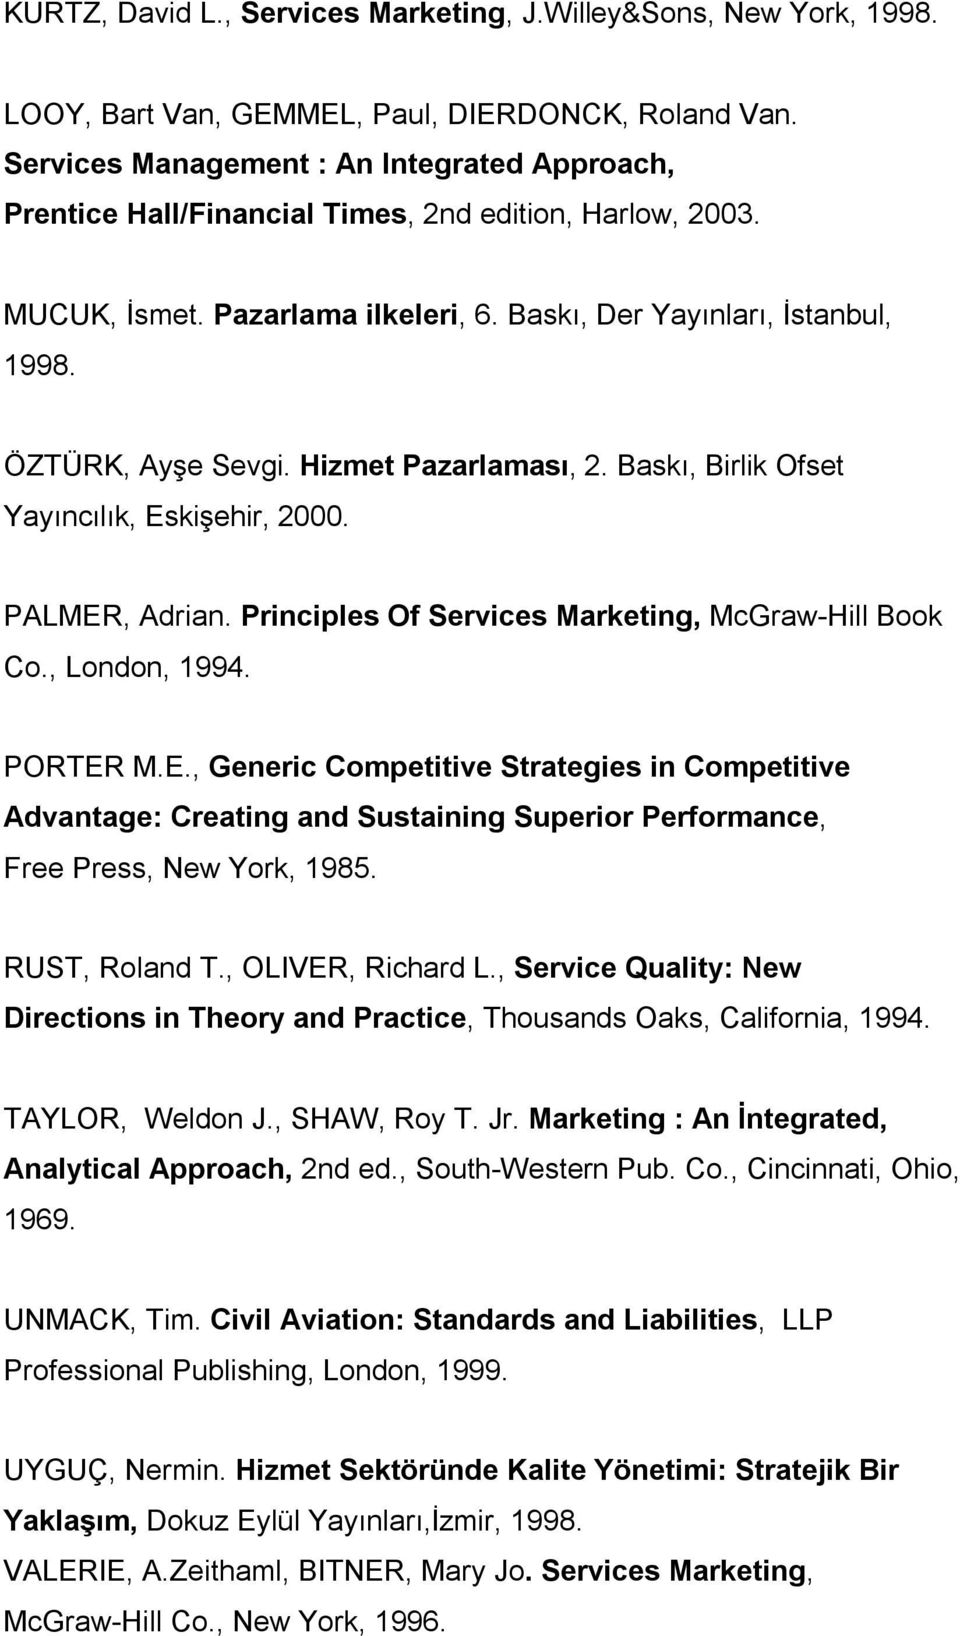 Hizmet Pazarlaması, 2. Baskı, Birlik Ofset Yayıncılık, Eskişehir, 2000. PALMER, Adrian. Principles Of Services Marketing, McGraw-Hill Book Co., London, 1994. PORTER M.E., Generic Competitive Strategies in Competitive Advantage: Creating and Sustaining Superior Performance, Free Press, New York, 1985.